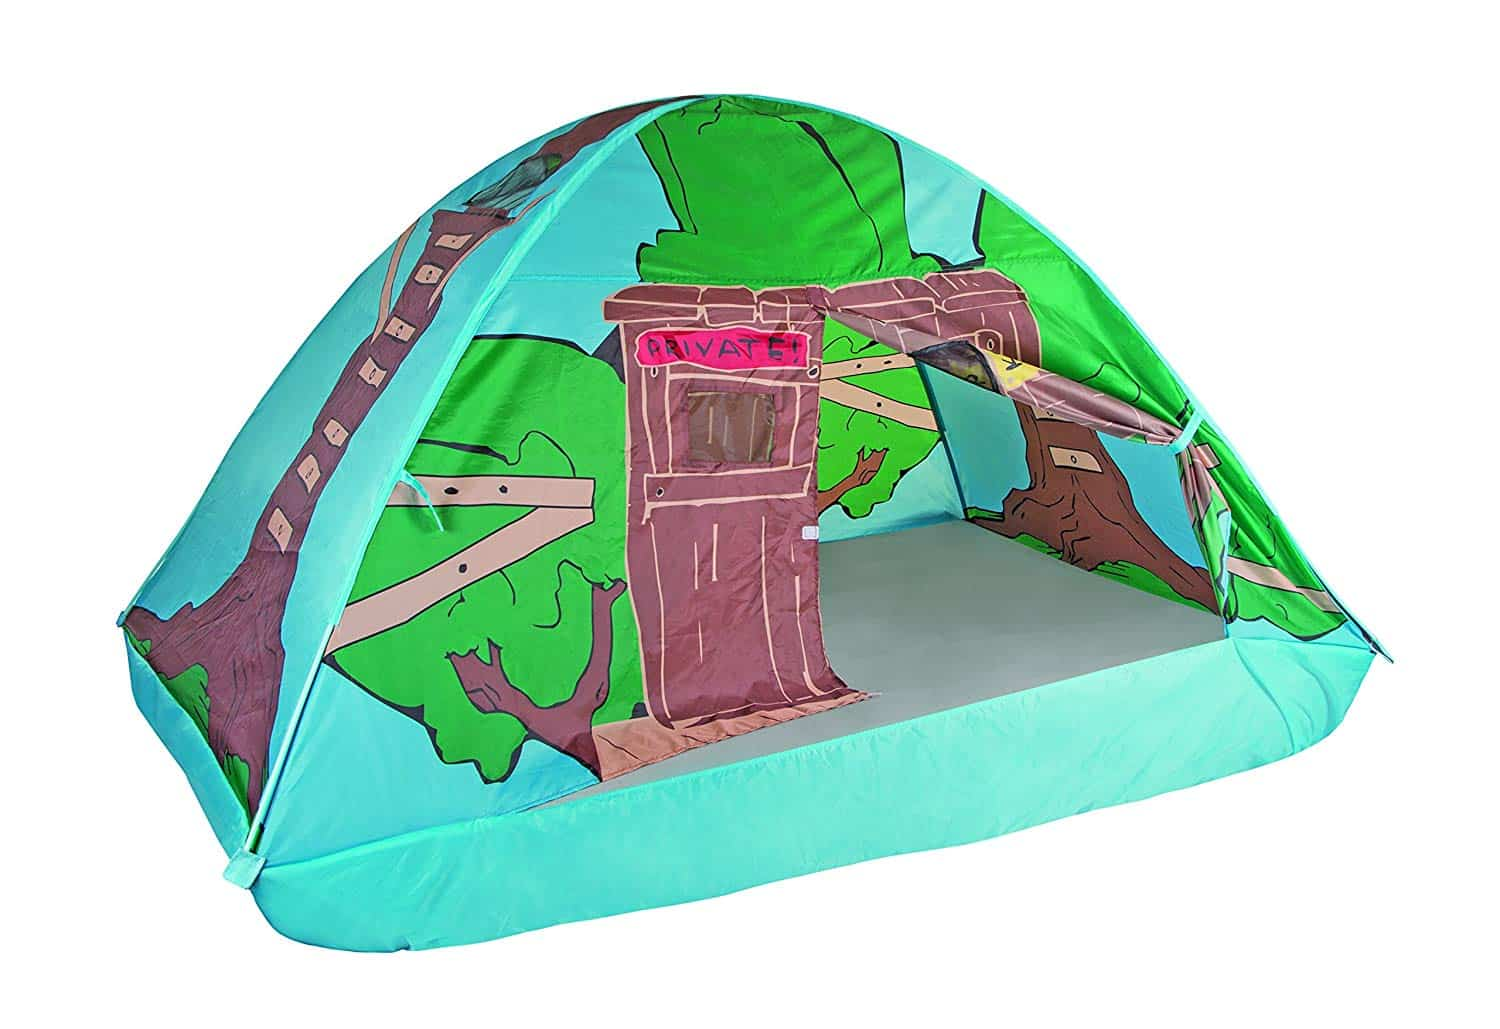 Pacific Play Tents 19791 Kids Tree House Bed Tent Playhouse